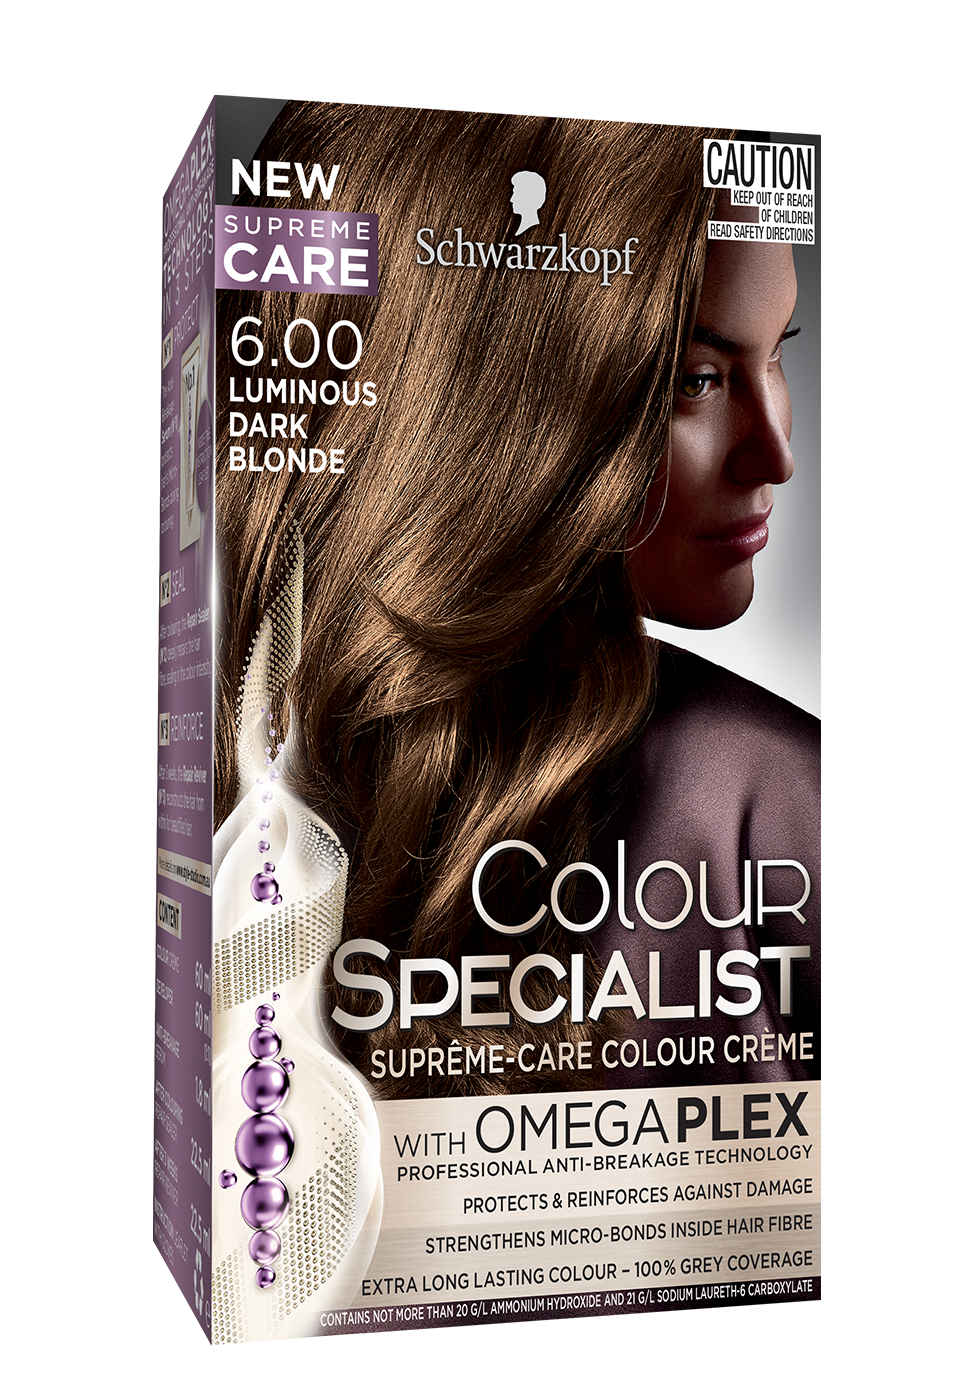 Thumbnail – 6-00 Luminous Dark Blonde